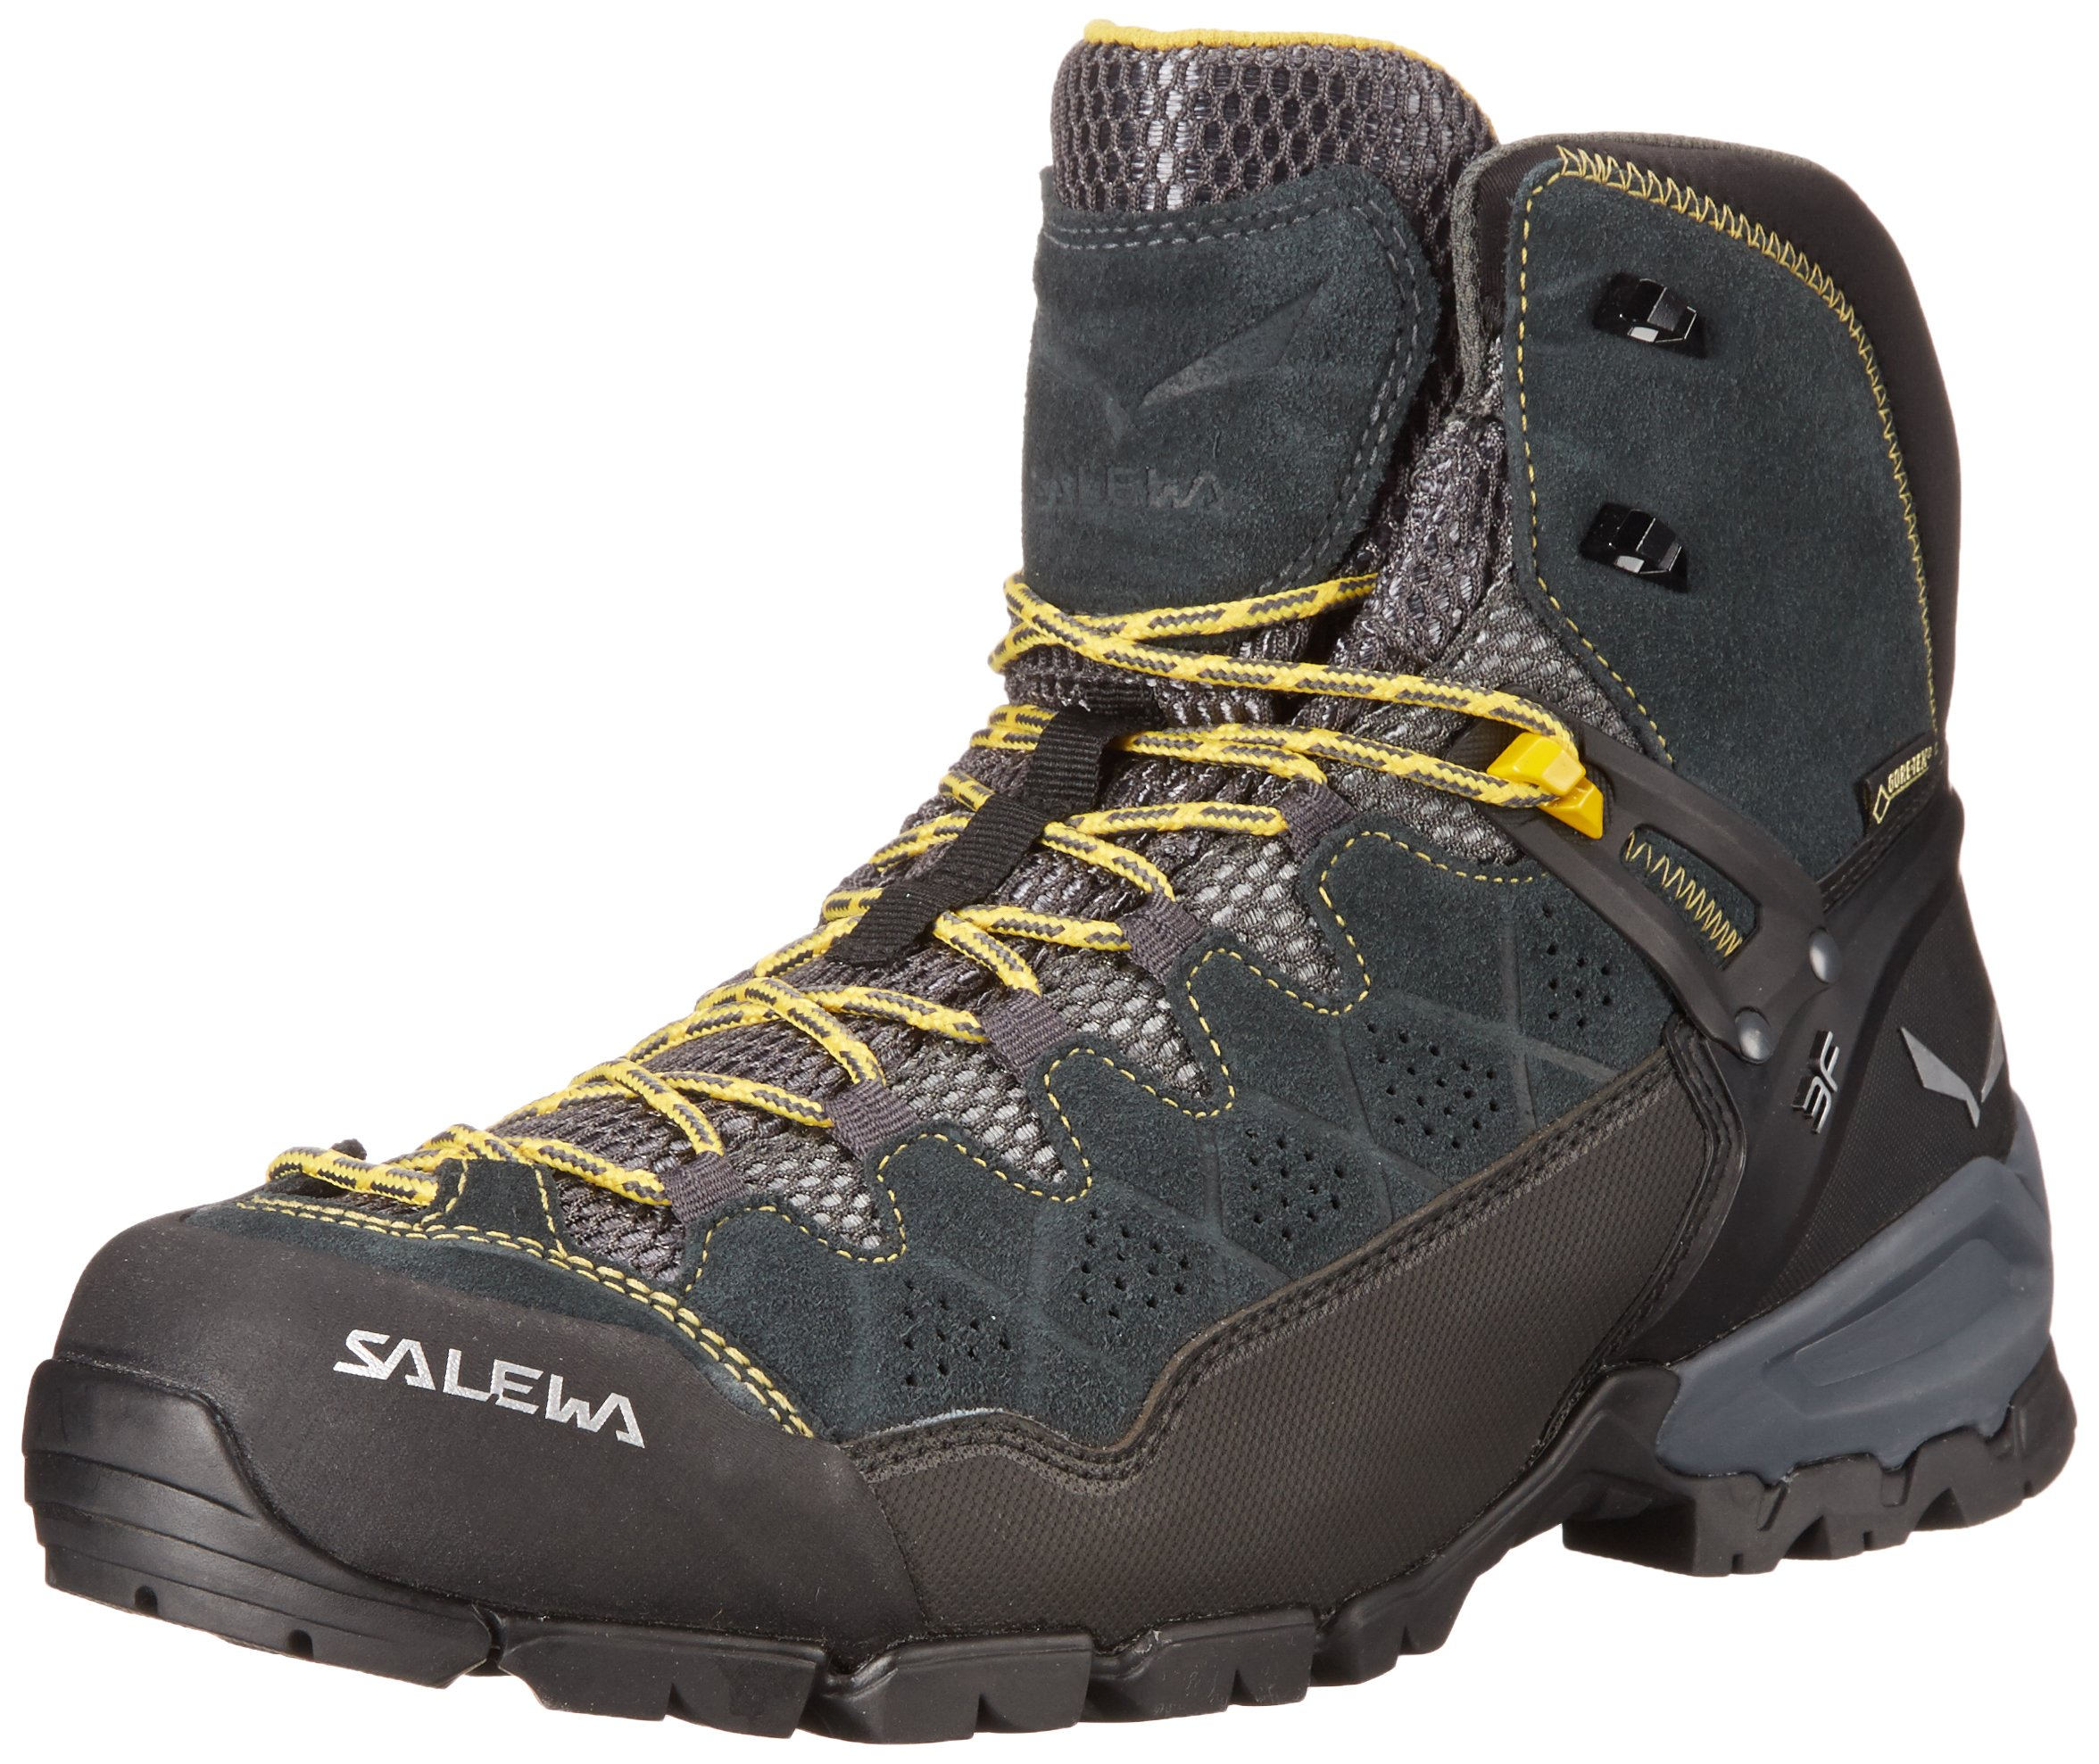 Salewa Men's ALP Trainer Mid GTX Alpine Trekking Boot, Carbon/Ringlo, 10 D US